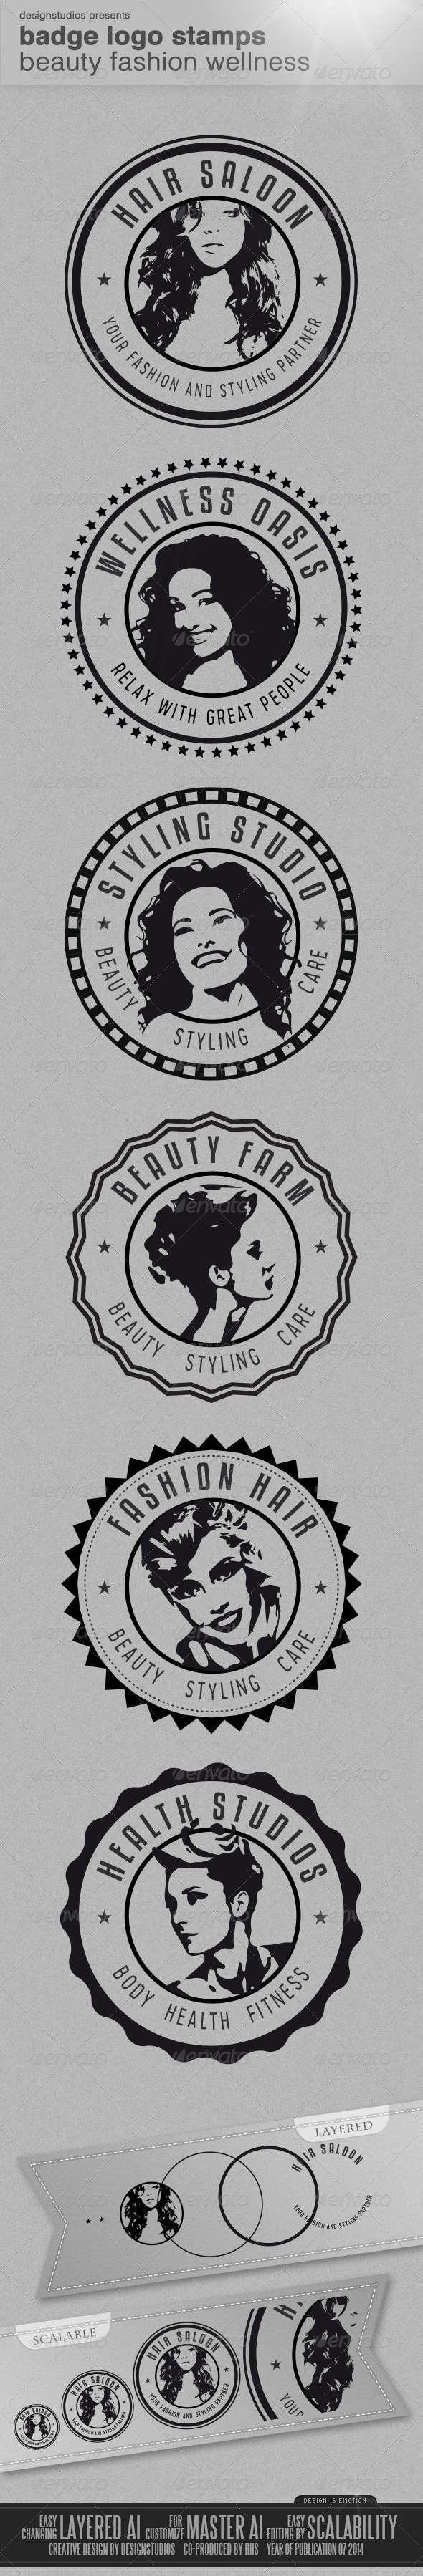 GraphicRiver Badge Logo Stamps Beauty Fashion Wellness 8206746